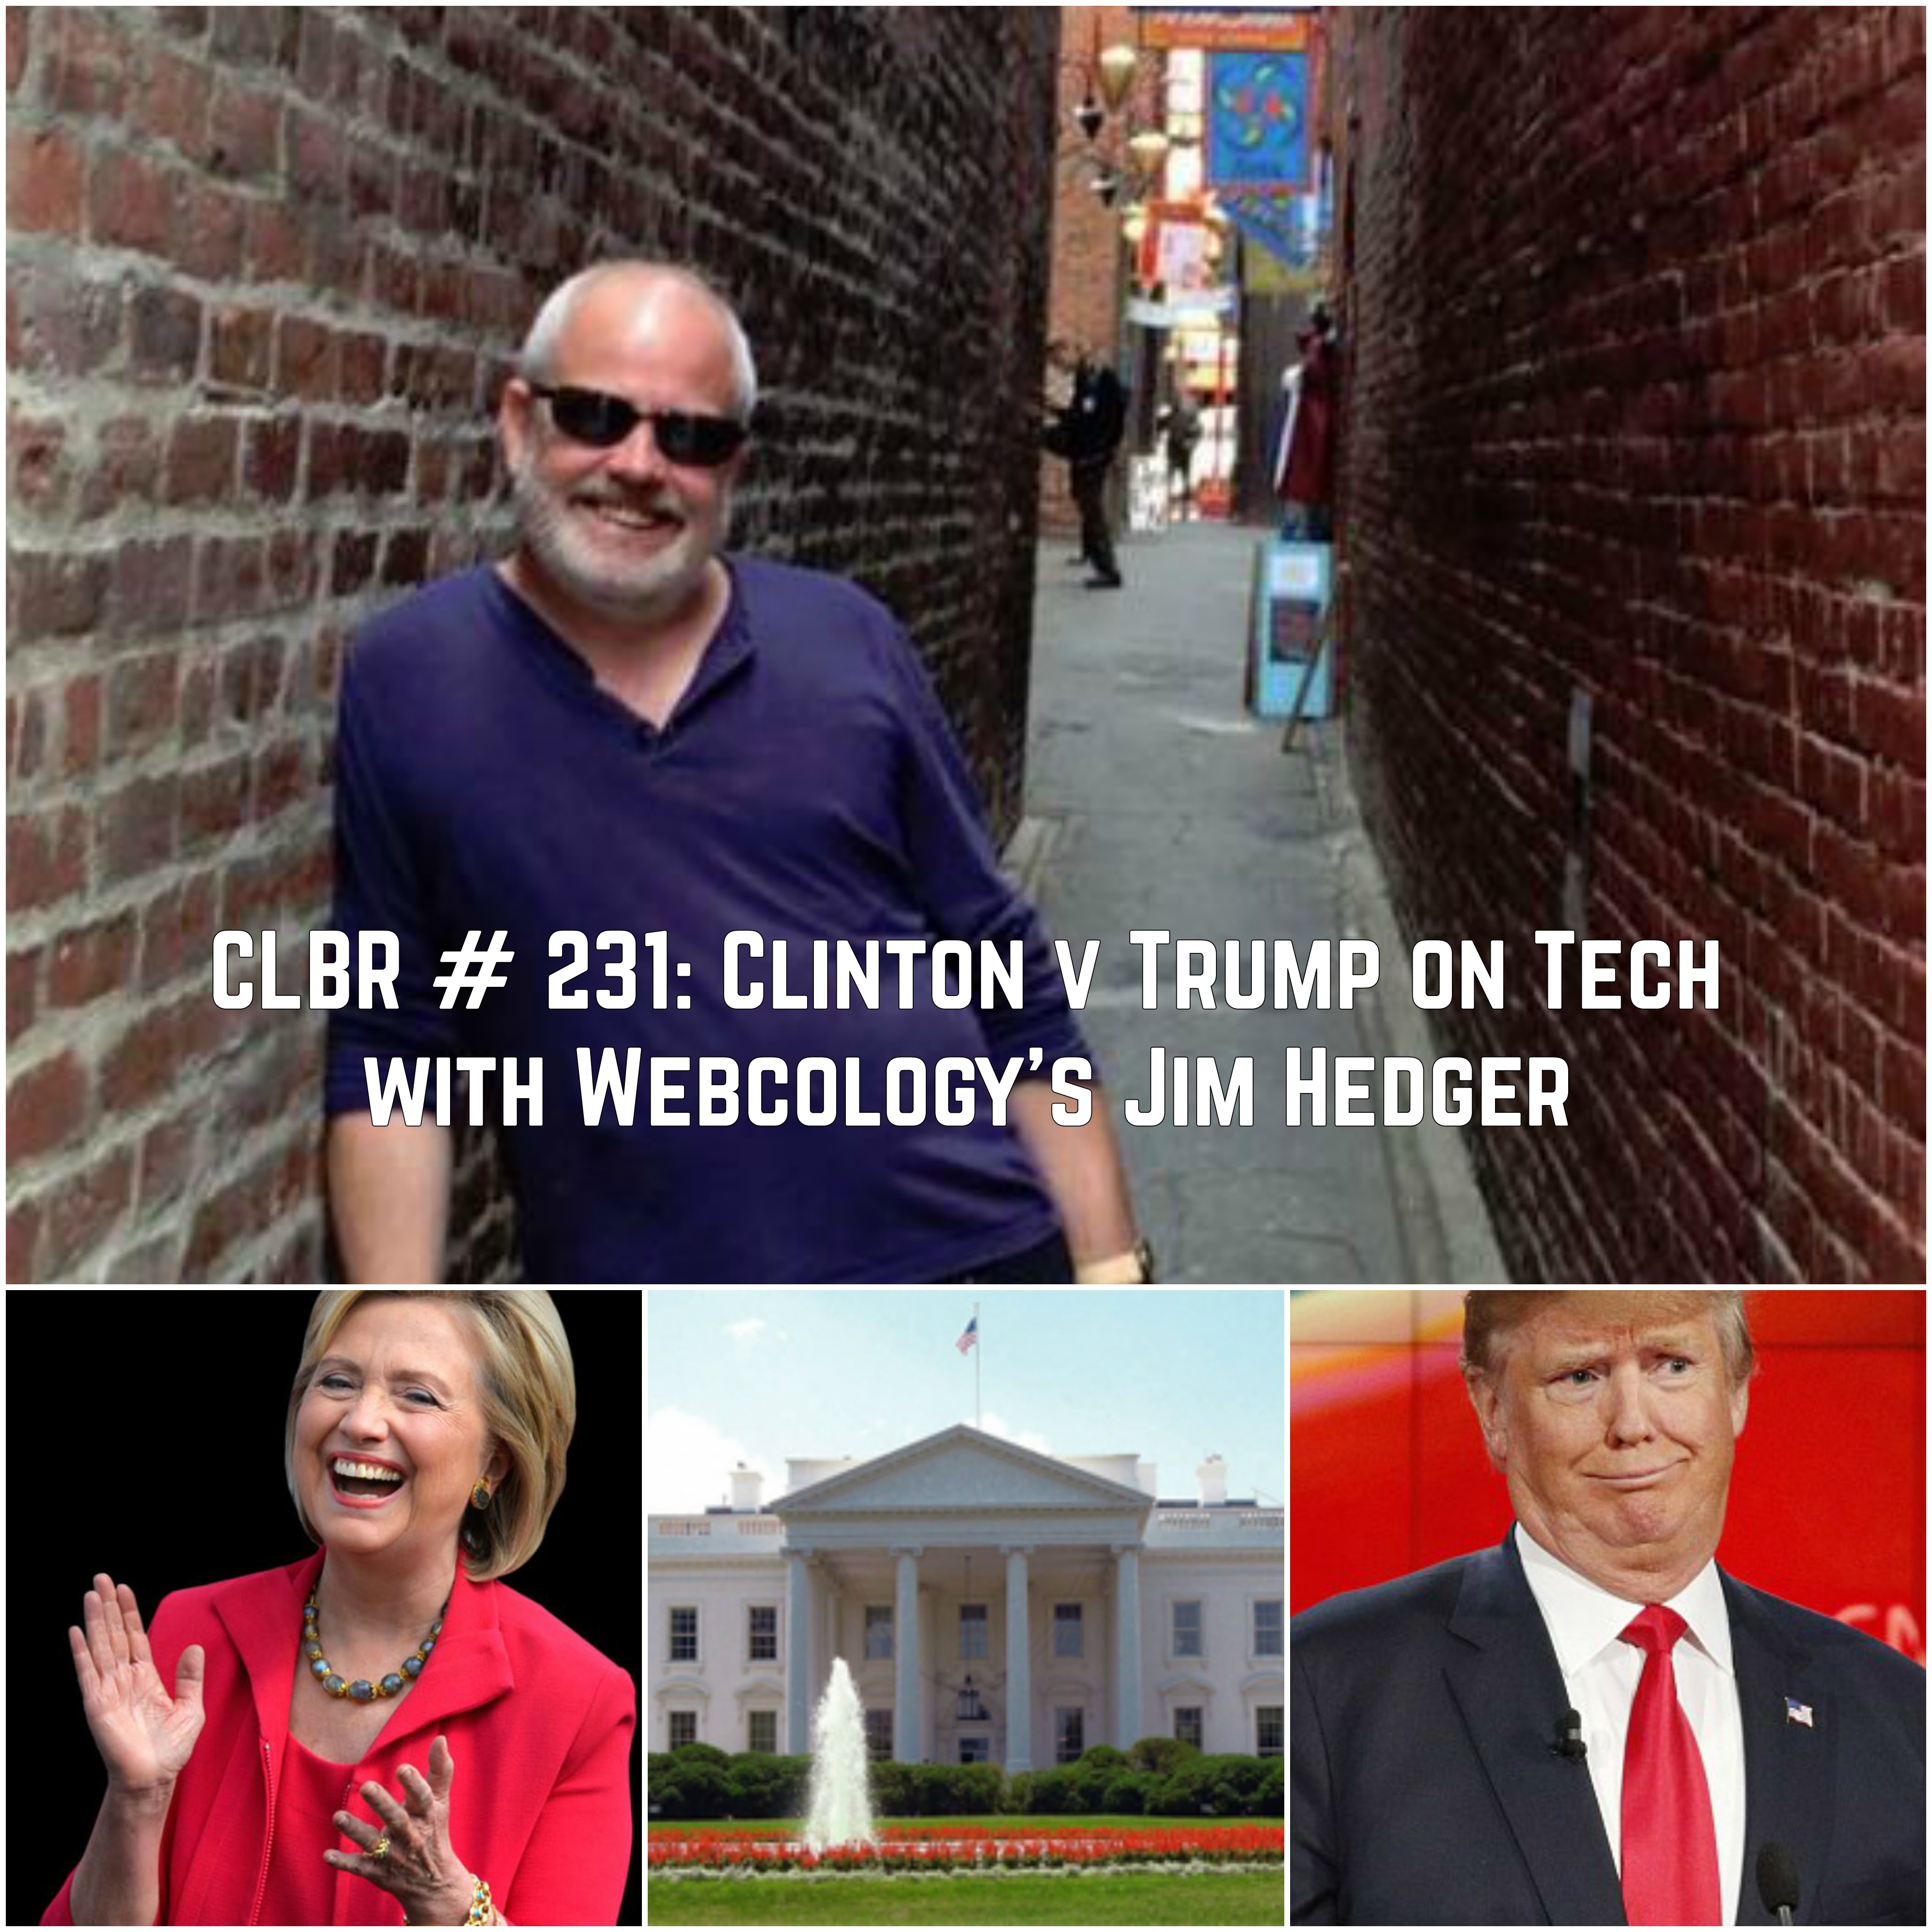 CLBR #231: Clinton v Trump on Tech with Webcology's Jim Hedger